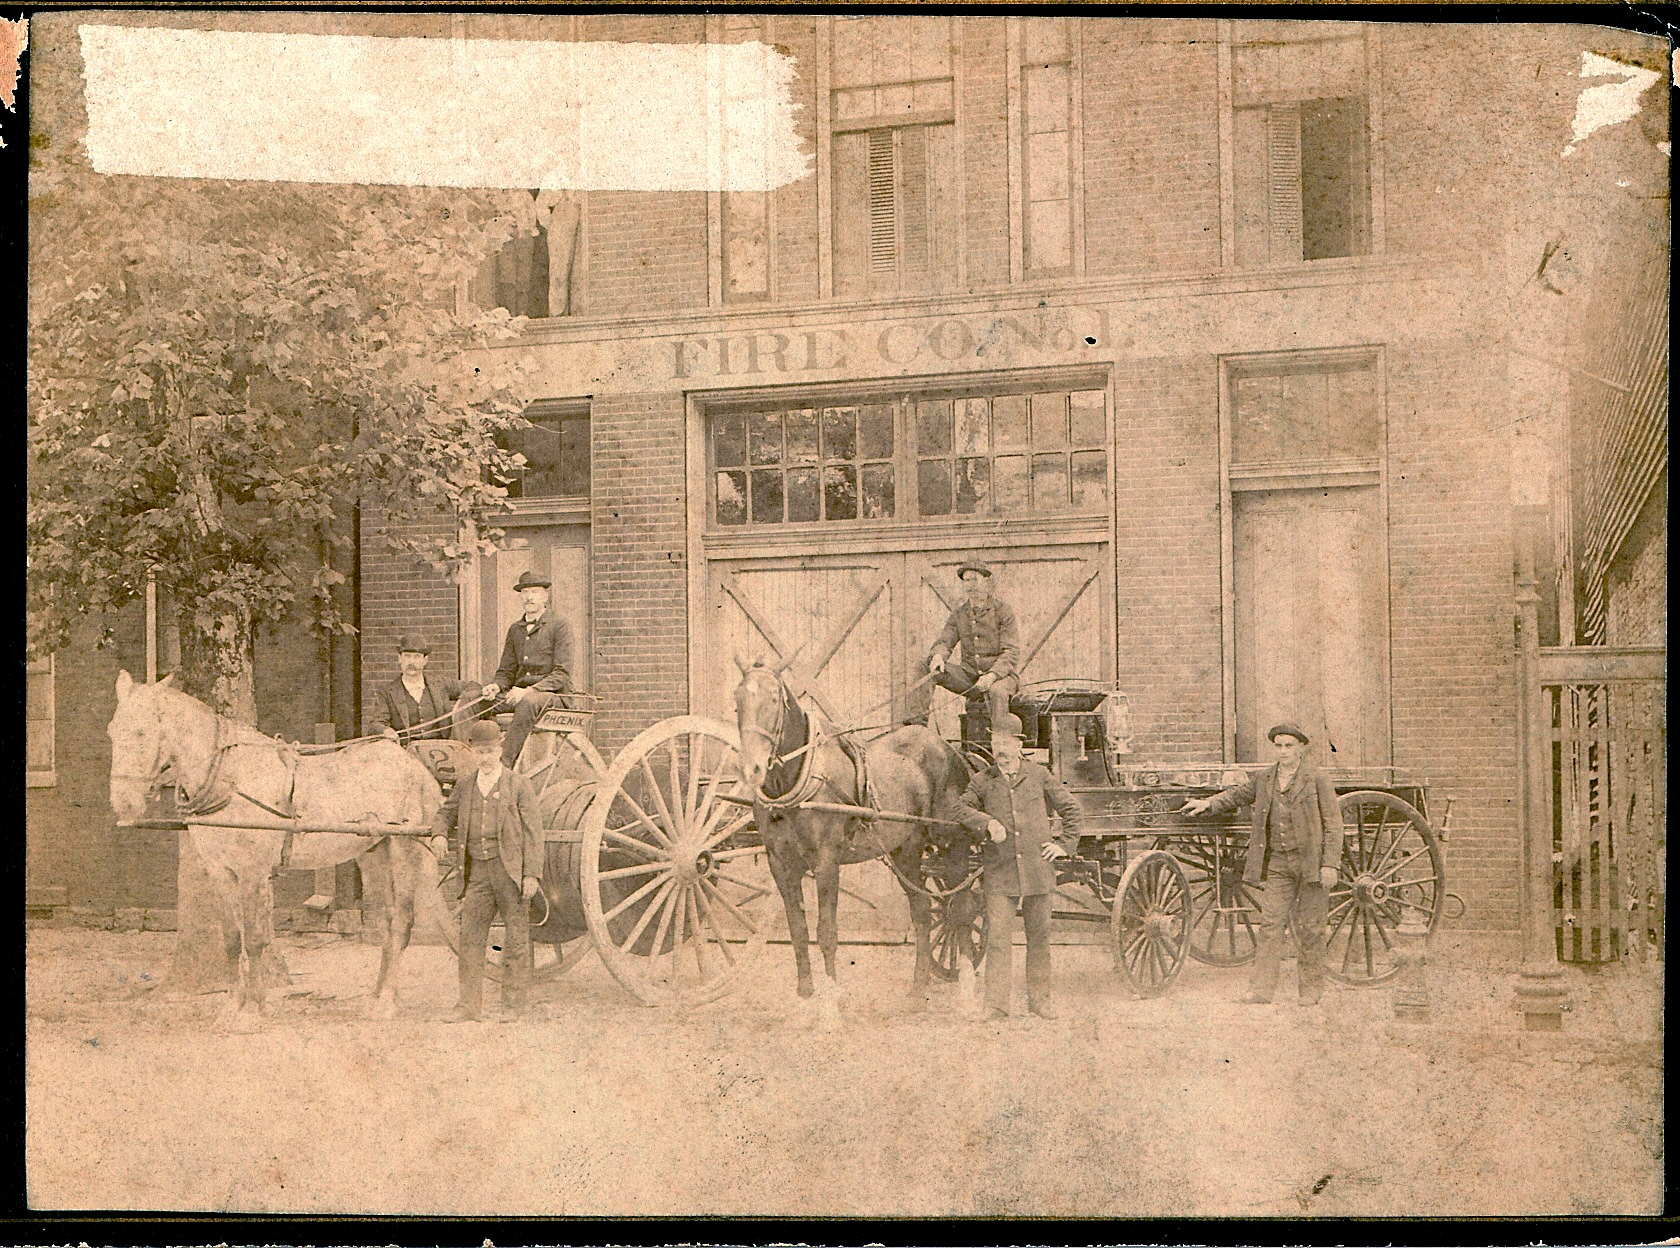 Washington Fire Company 1 Late 1800's